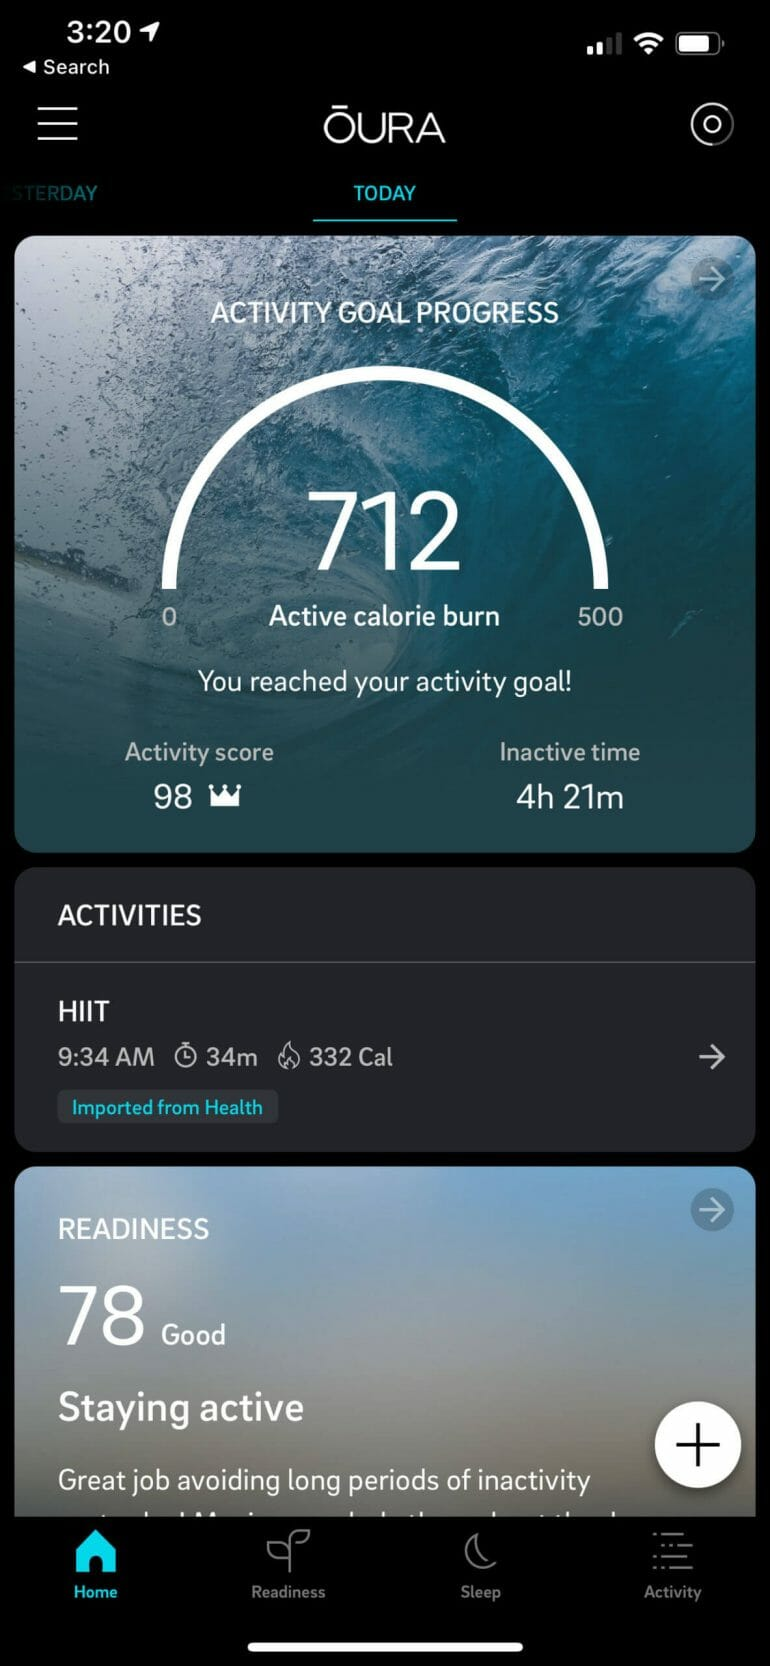 I've never paid too much attention to the Active Calorie Burn metric